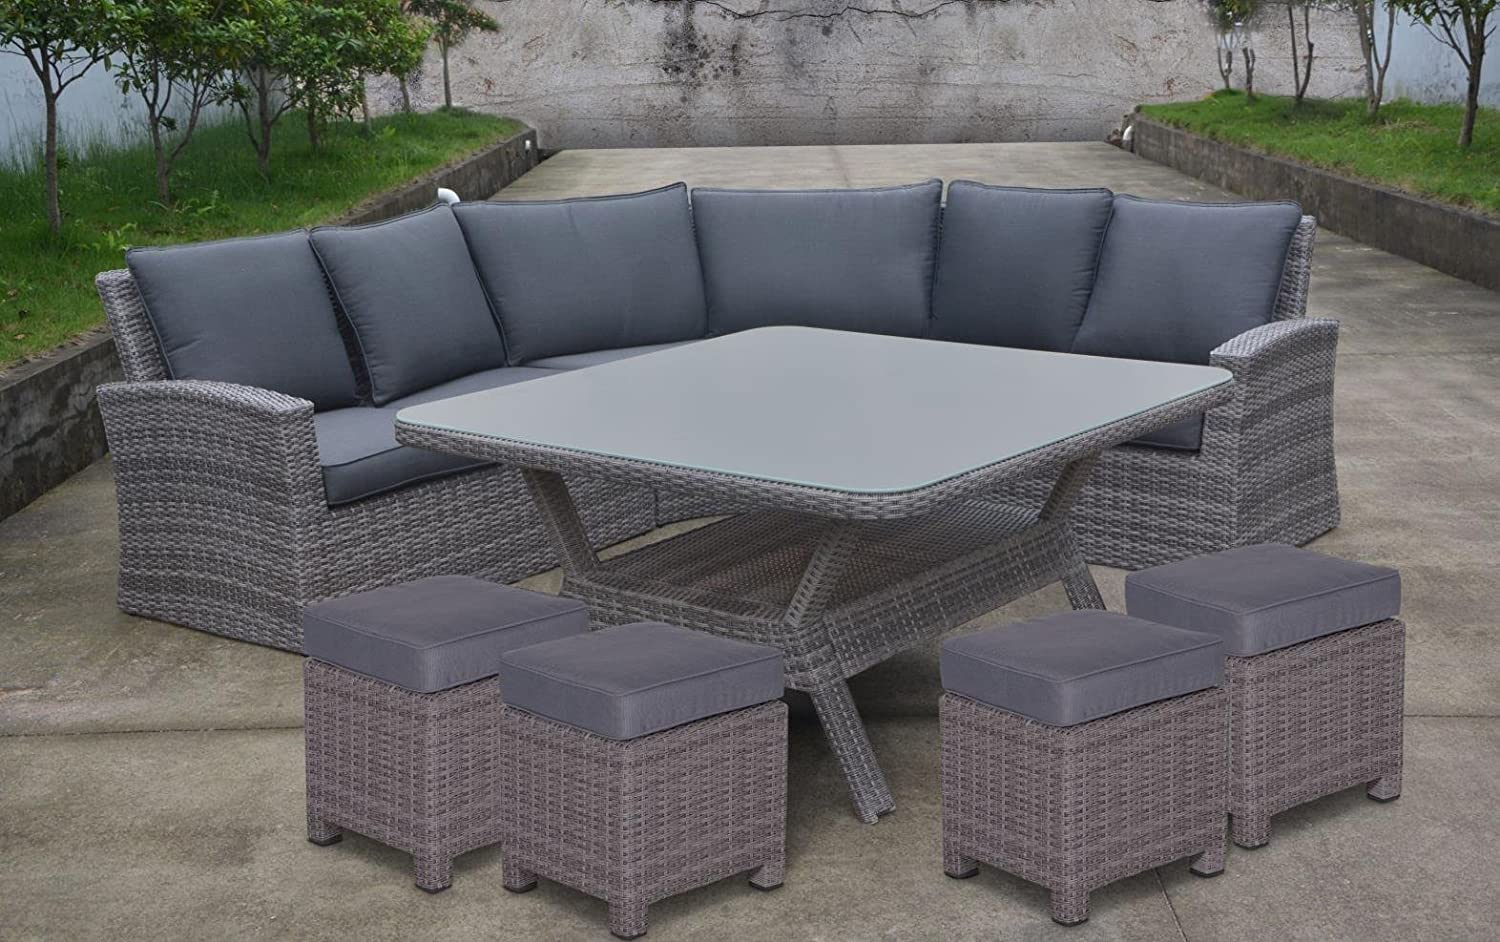 Polyrattan Lounge Gnstig Affordable Hohe Dining Poly